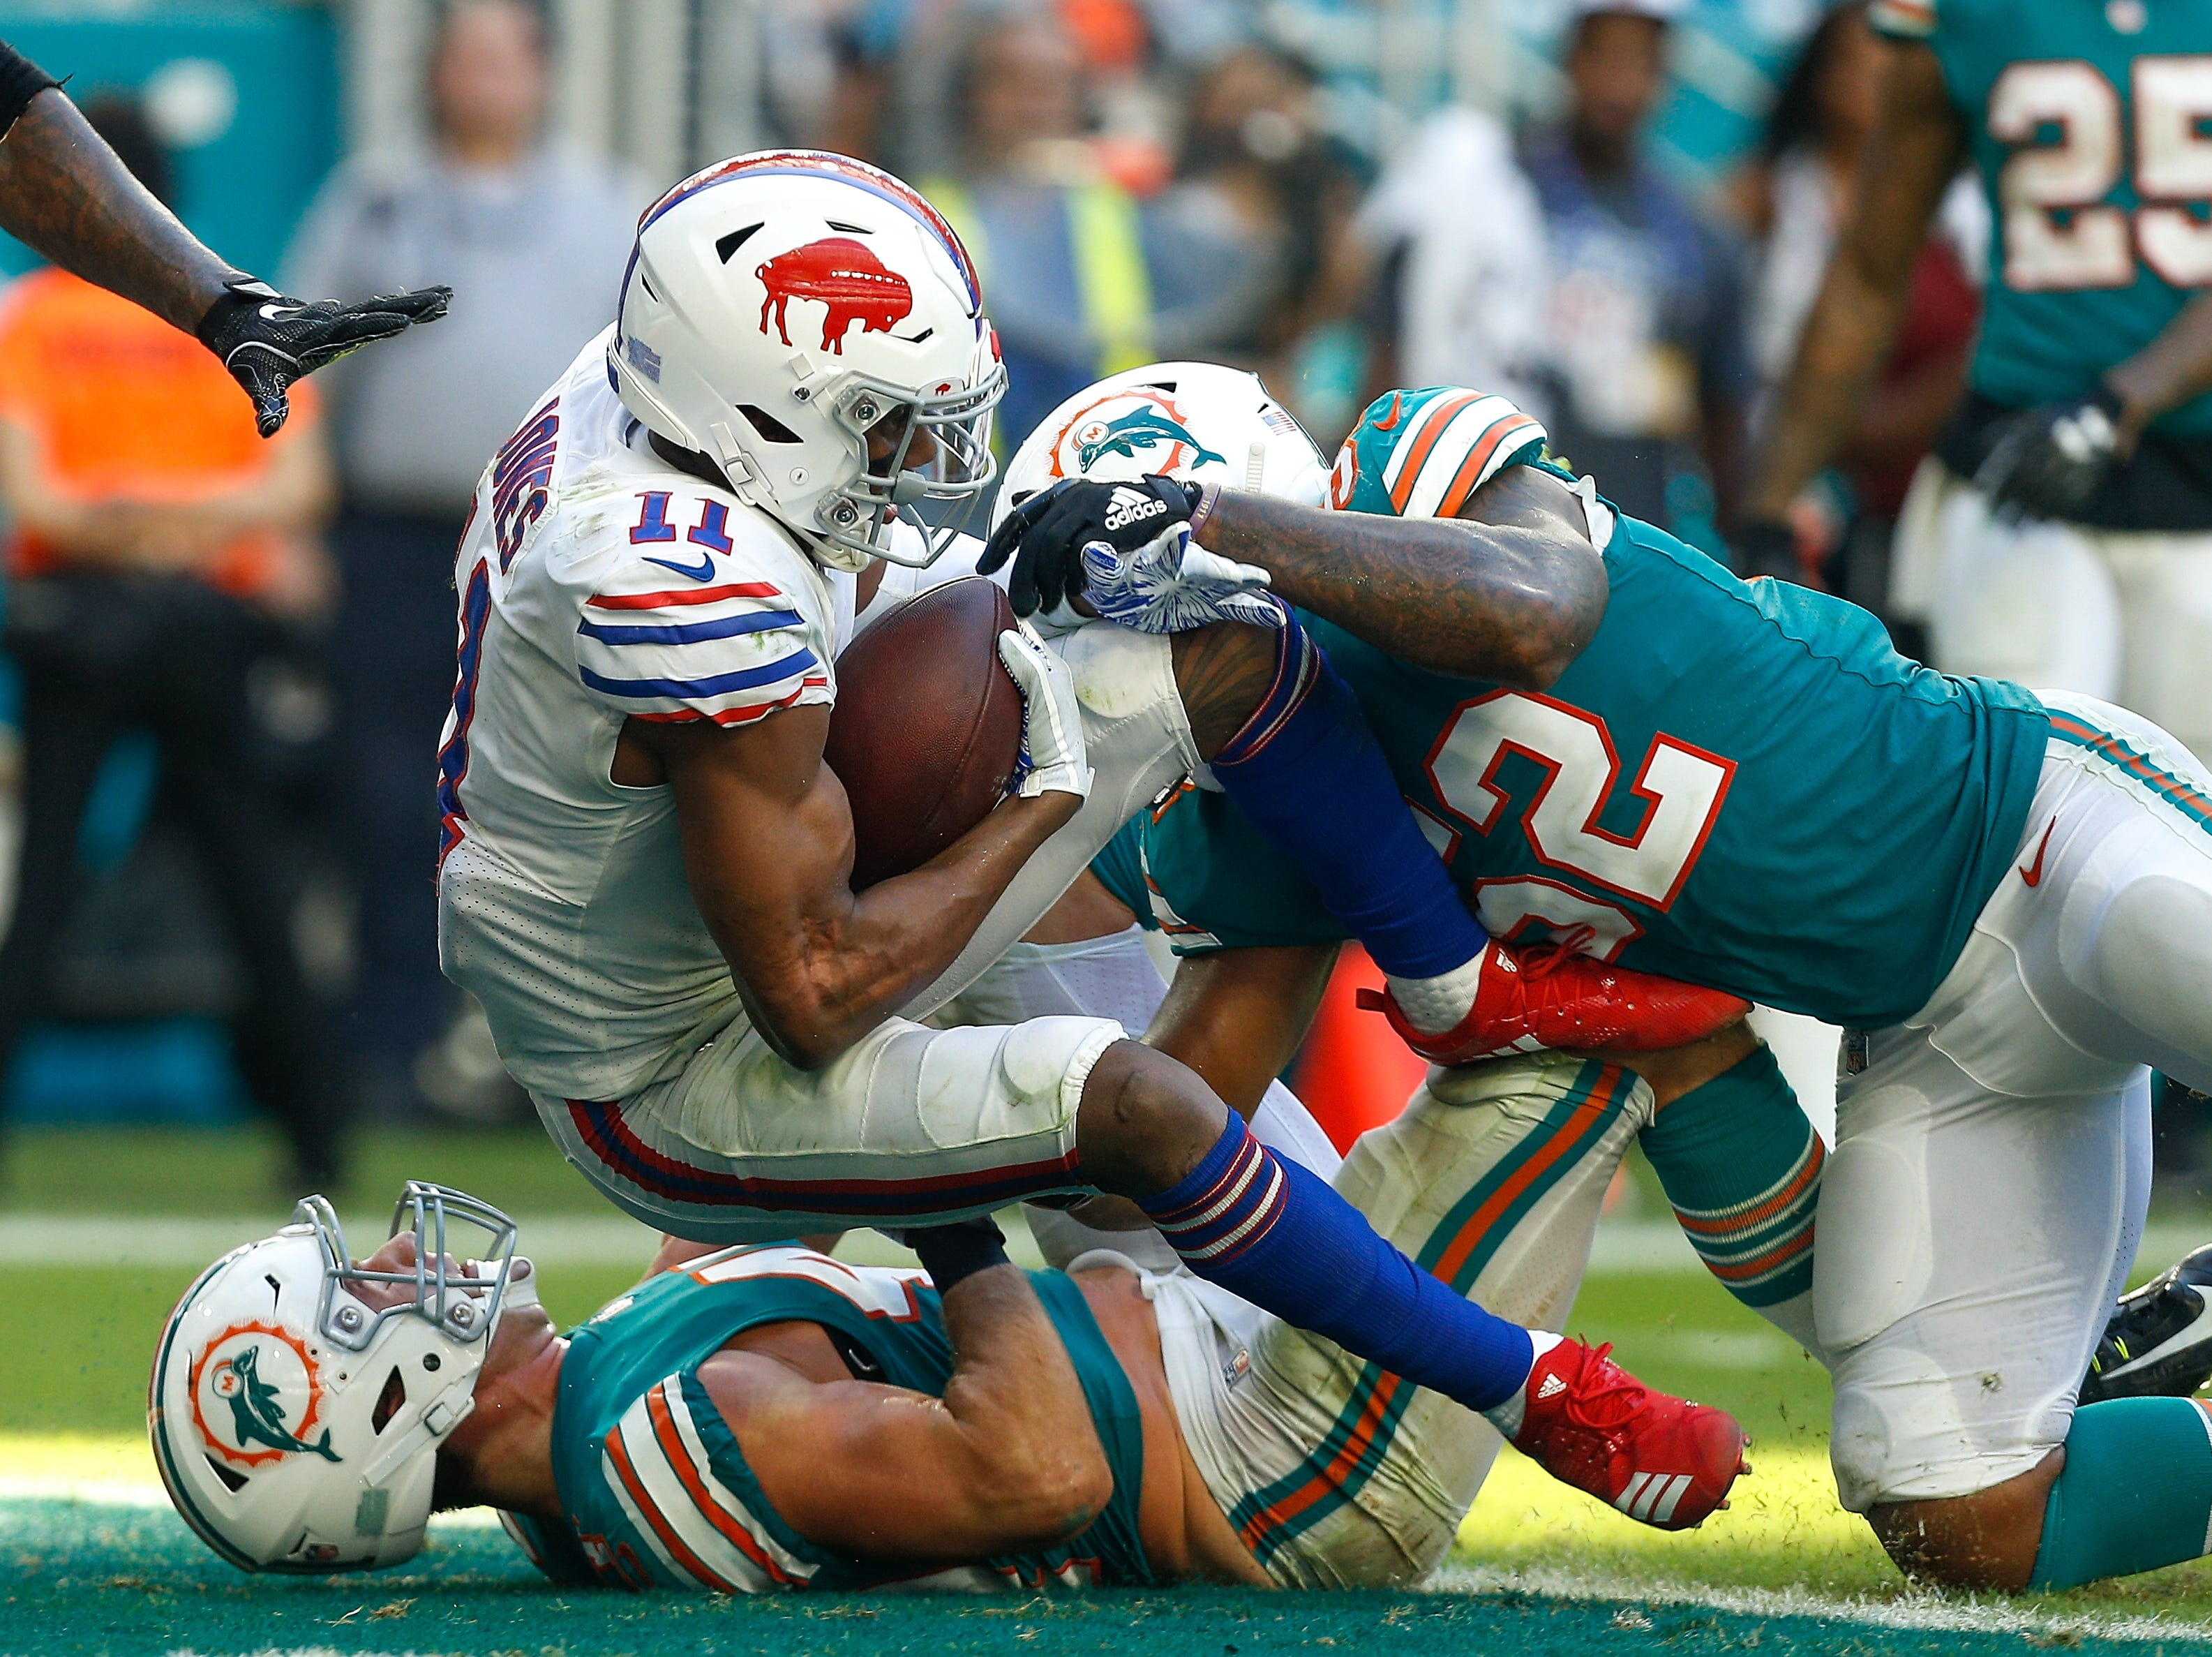 MIAMI, FL - DECEMBER 02:  Zay Jones #11 of the Buffalo Bills dives into the endzone for a touchdown against the Miami Dolphins during the second half at Hard Rock Stadium on December 2, 2018 in Miami, Florida.  (Photo by Michael Reaves/Getty Images)